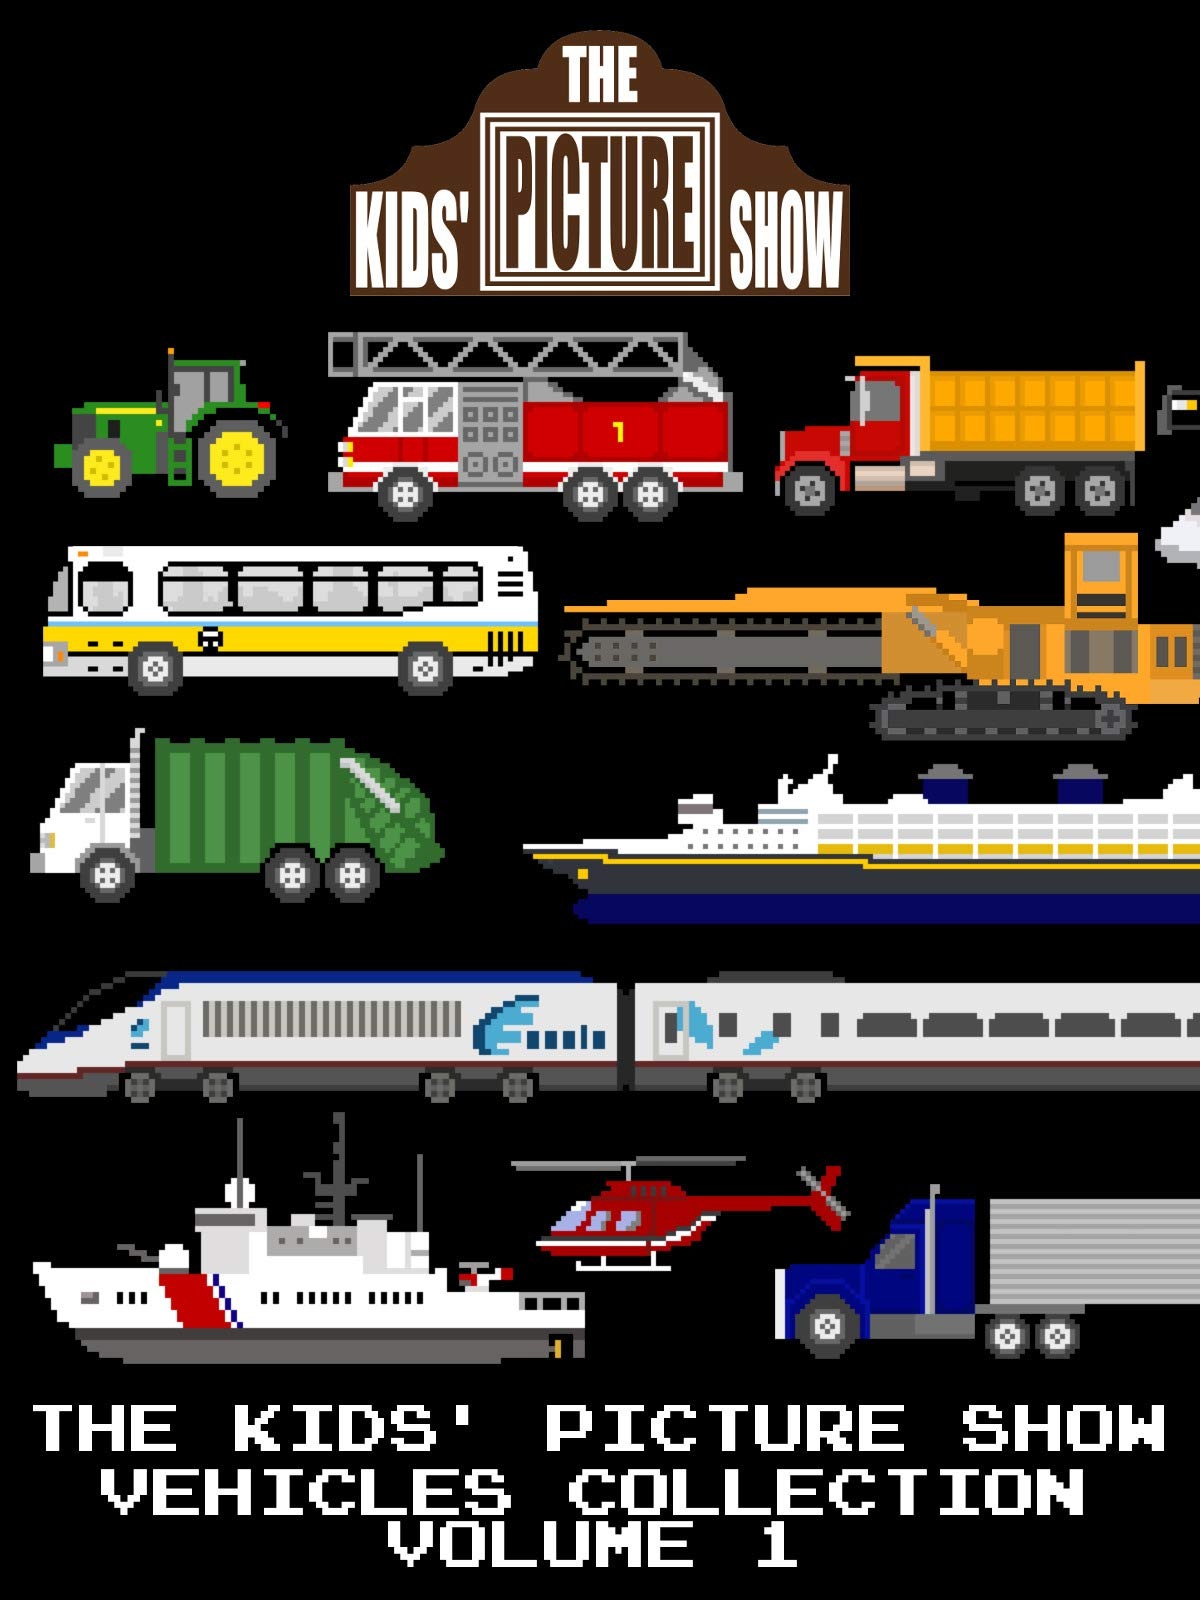 The Kids' Picture Show - Vehicles Collection Volume 1